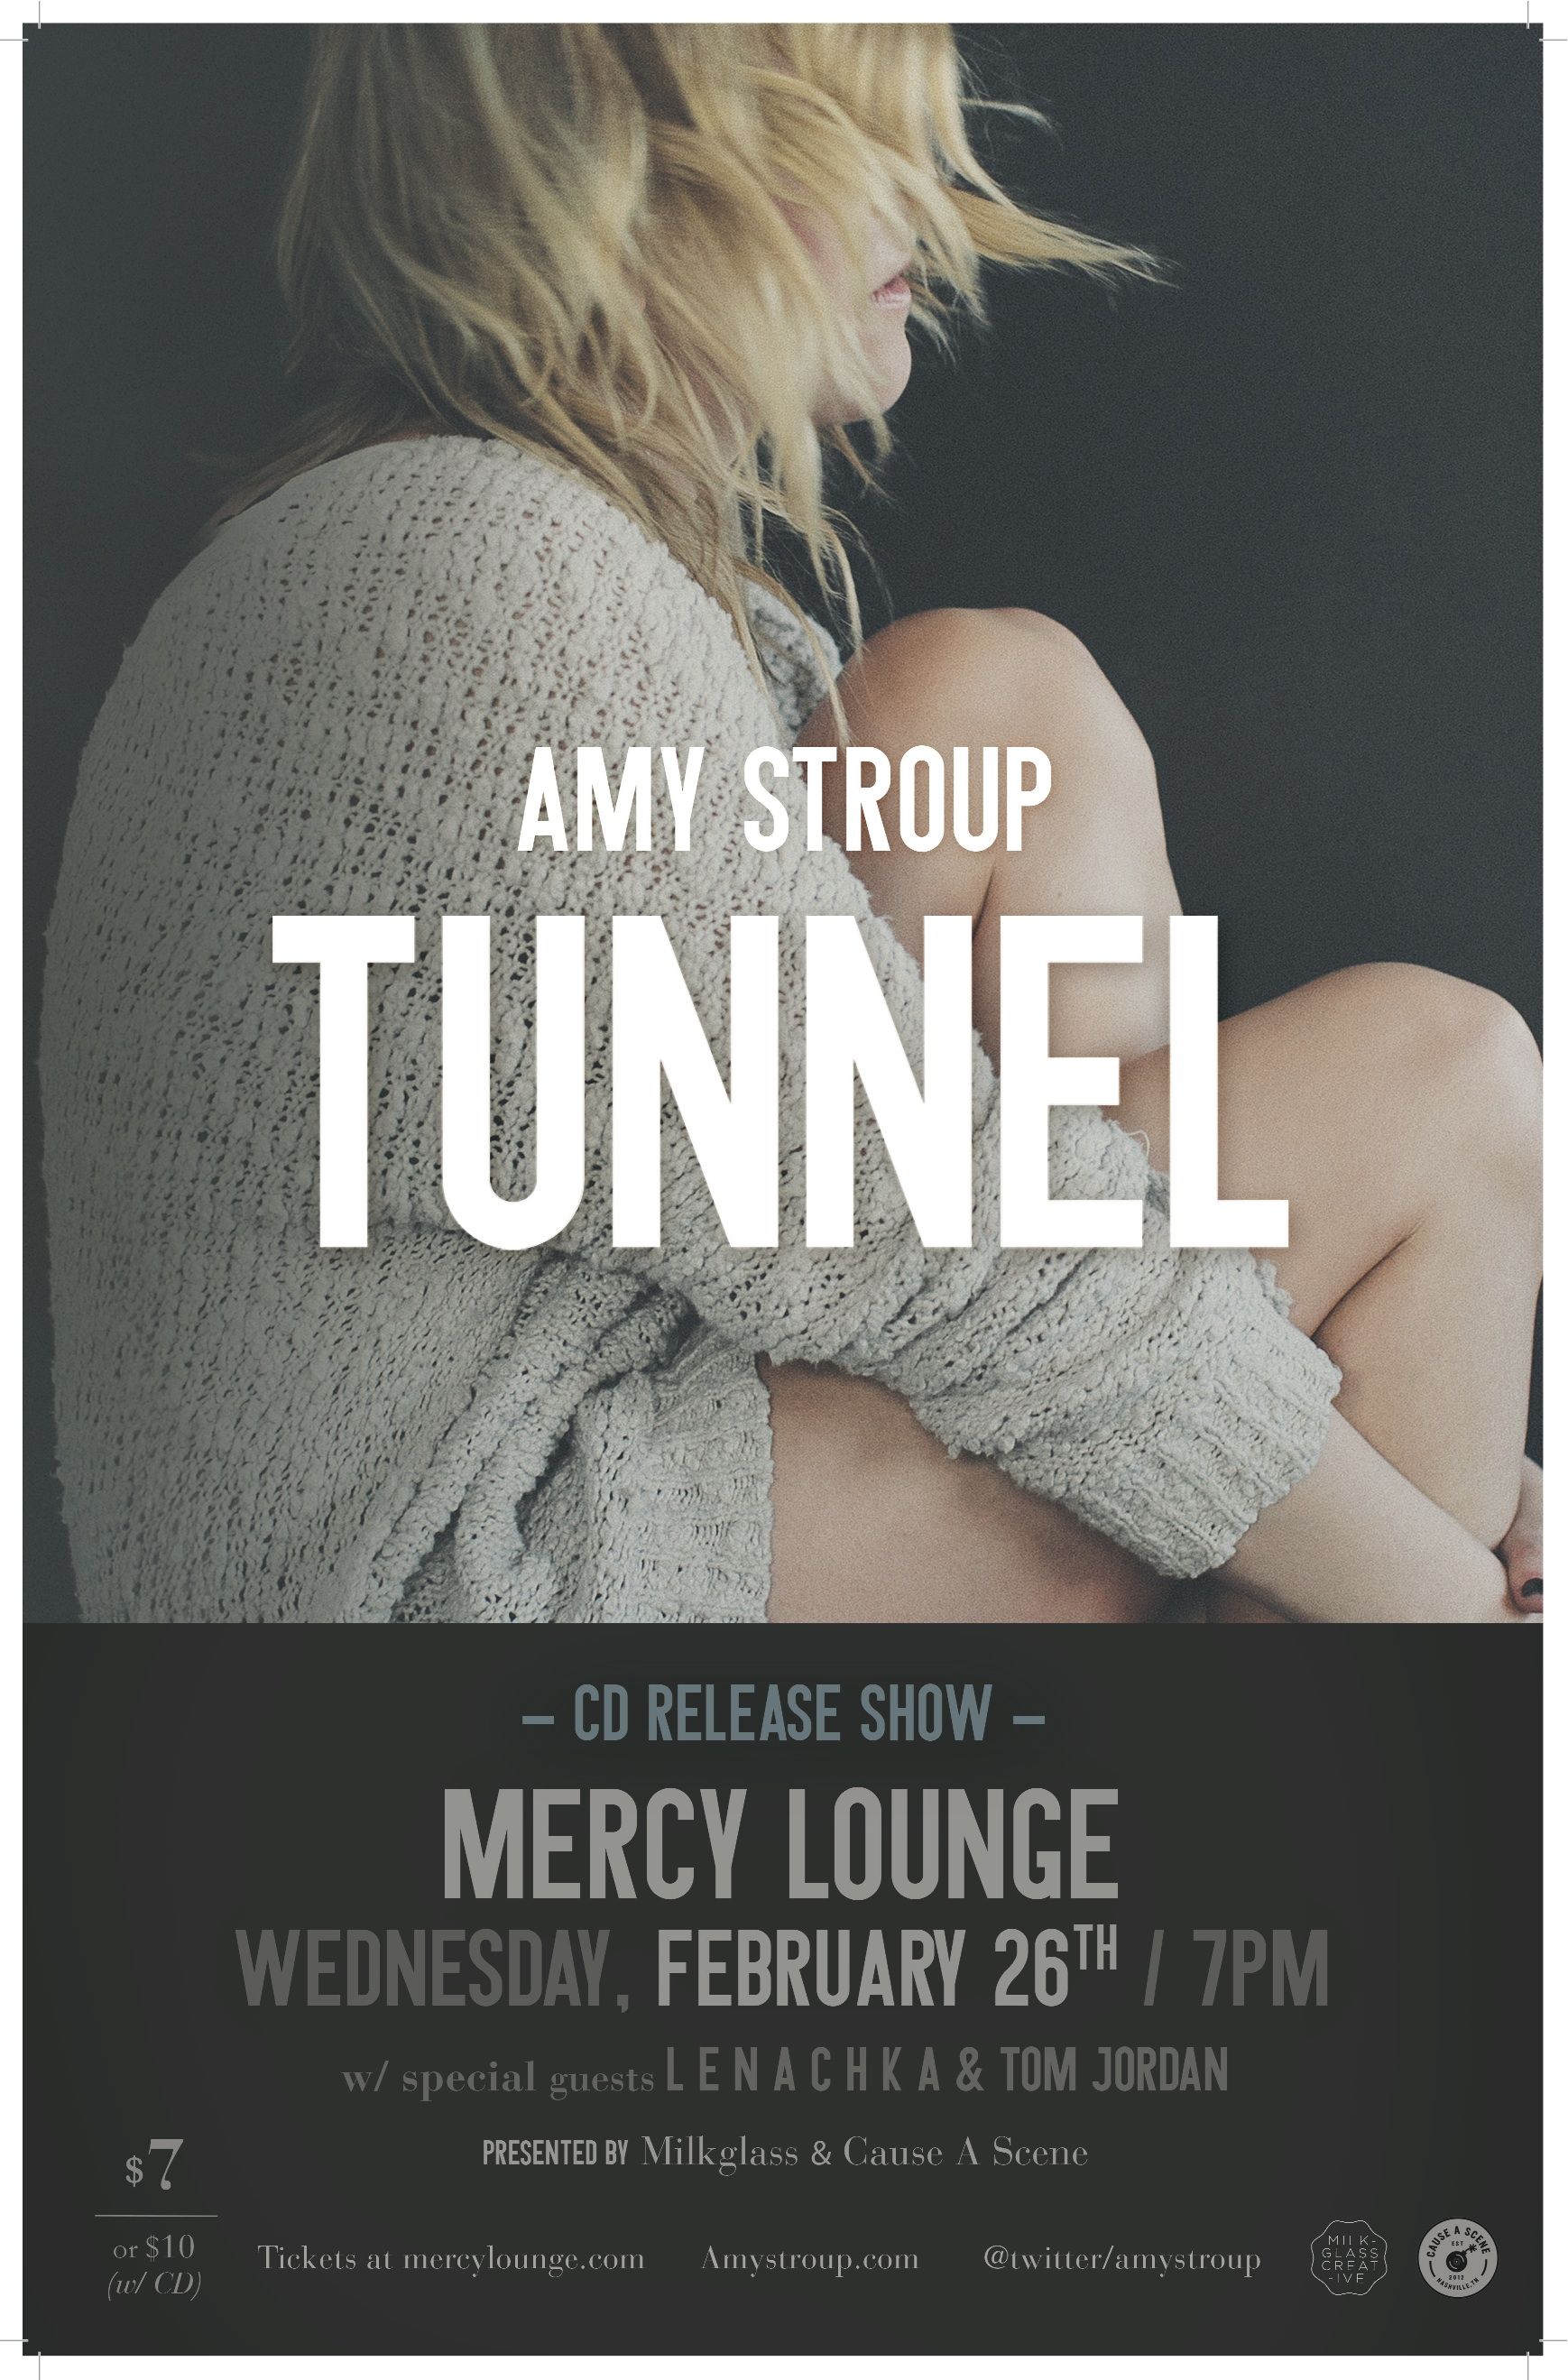 Amy Stroup CD Release Poster